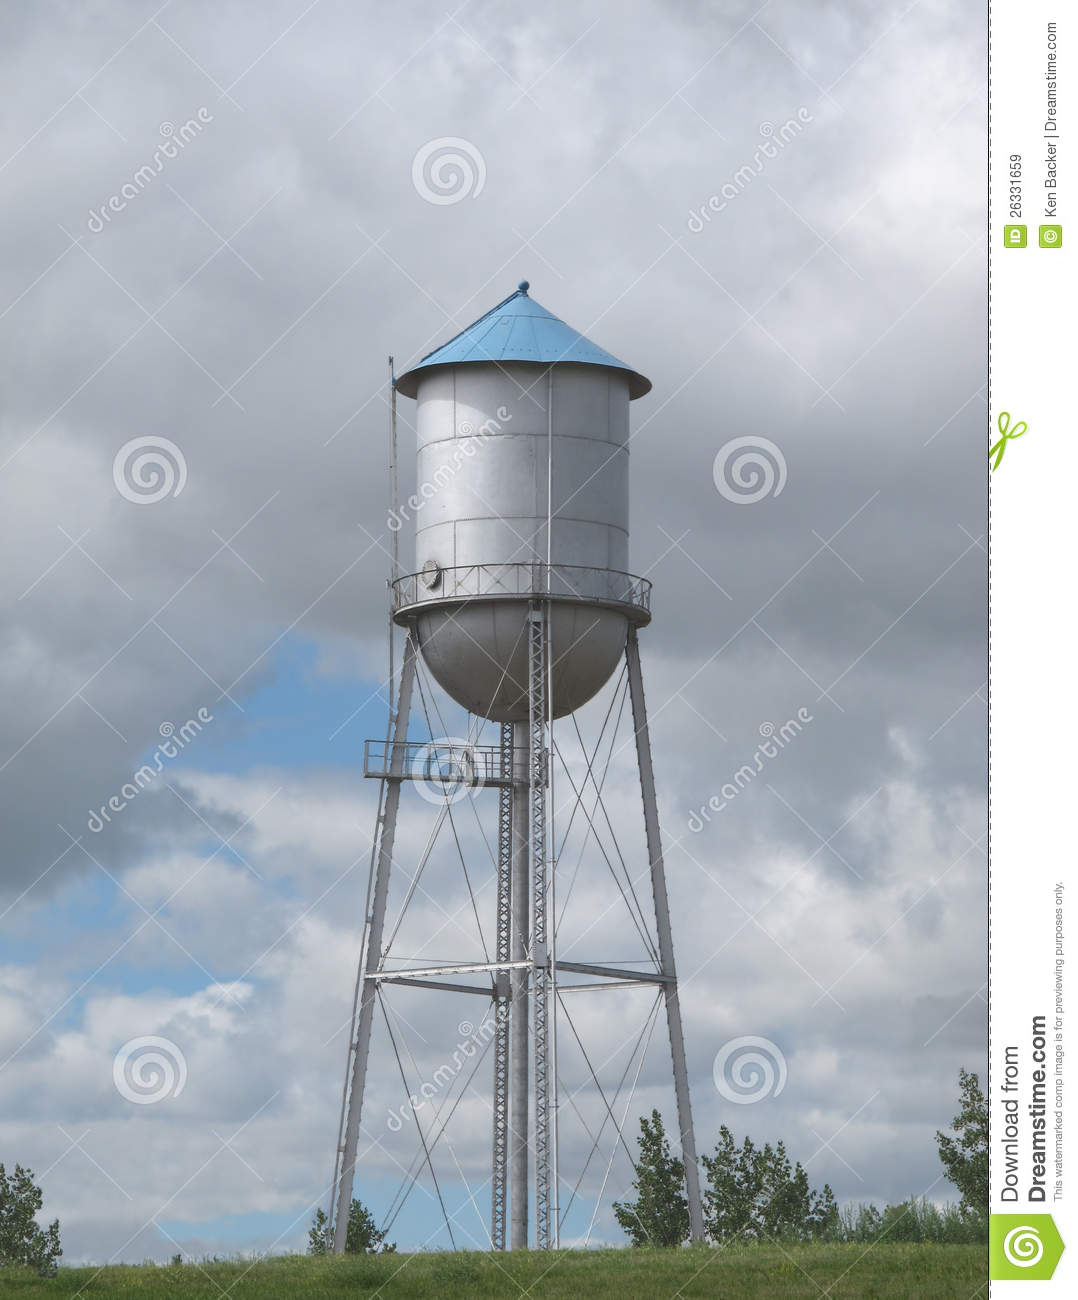 Animated Water Tower Clipart.